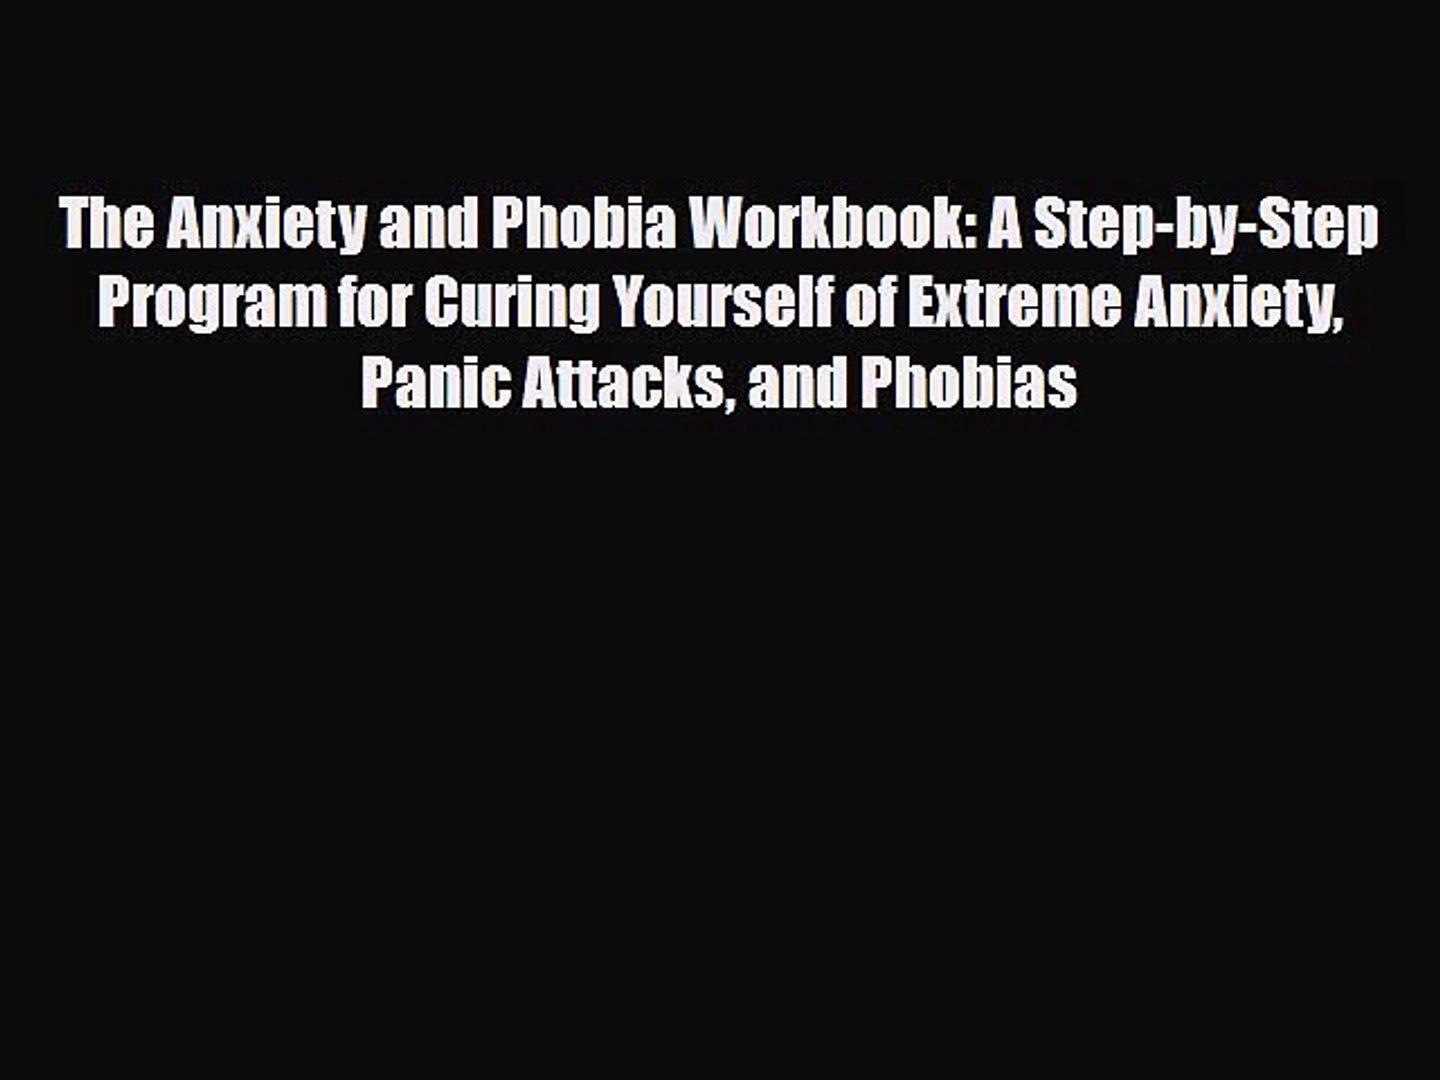 Download The Anxiety and Phobia Workbook: A Step-by-Step Program for Curing  Yourself of Extreme